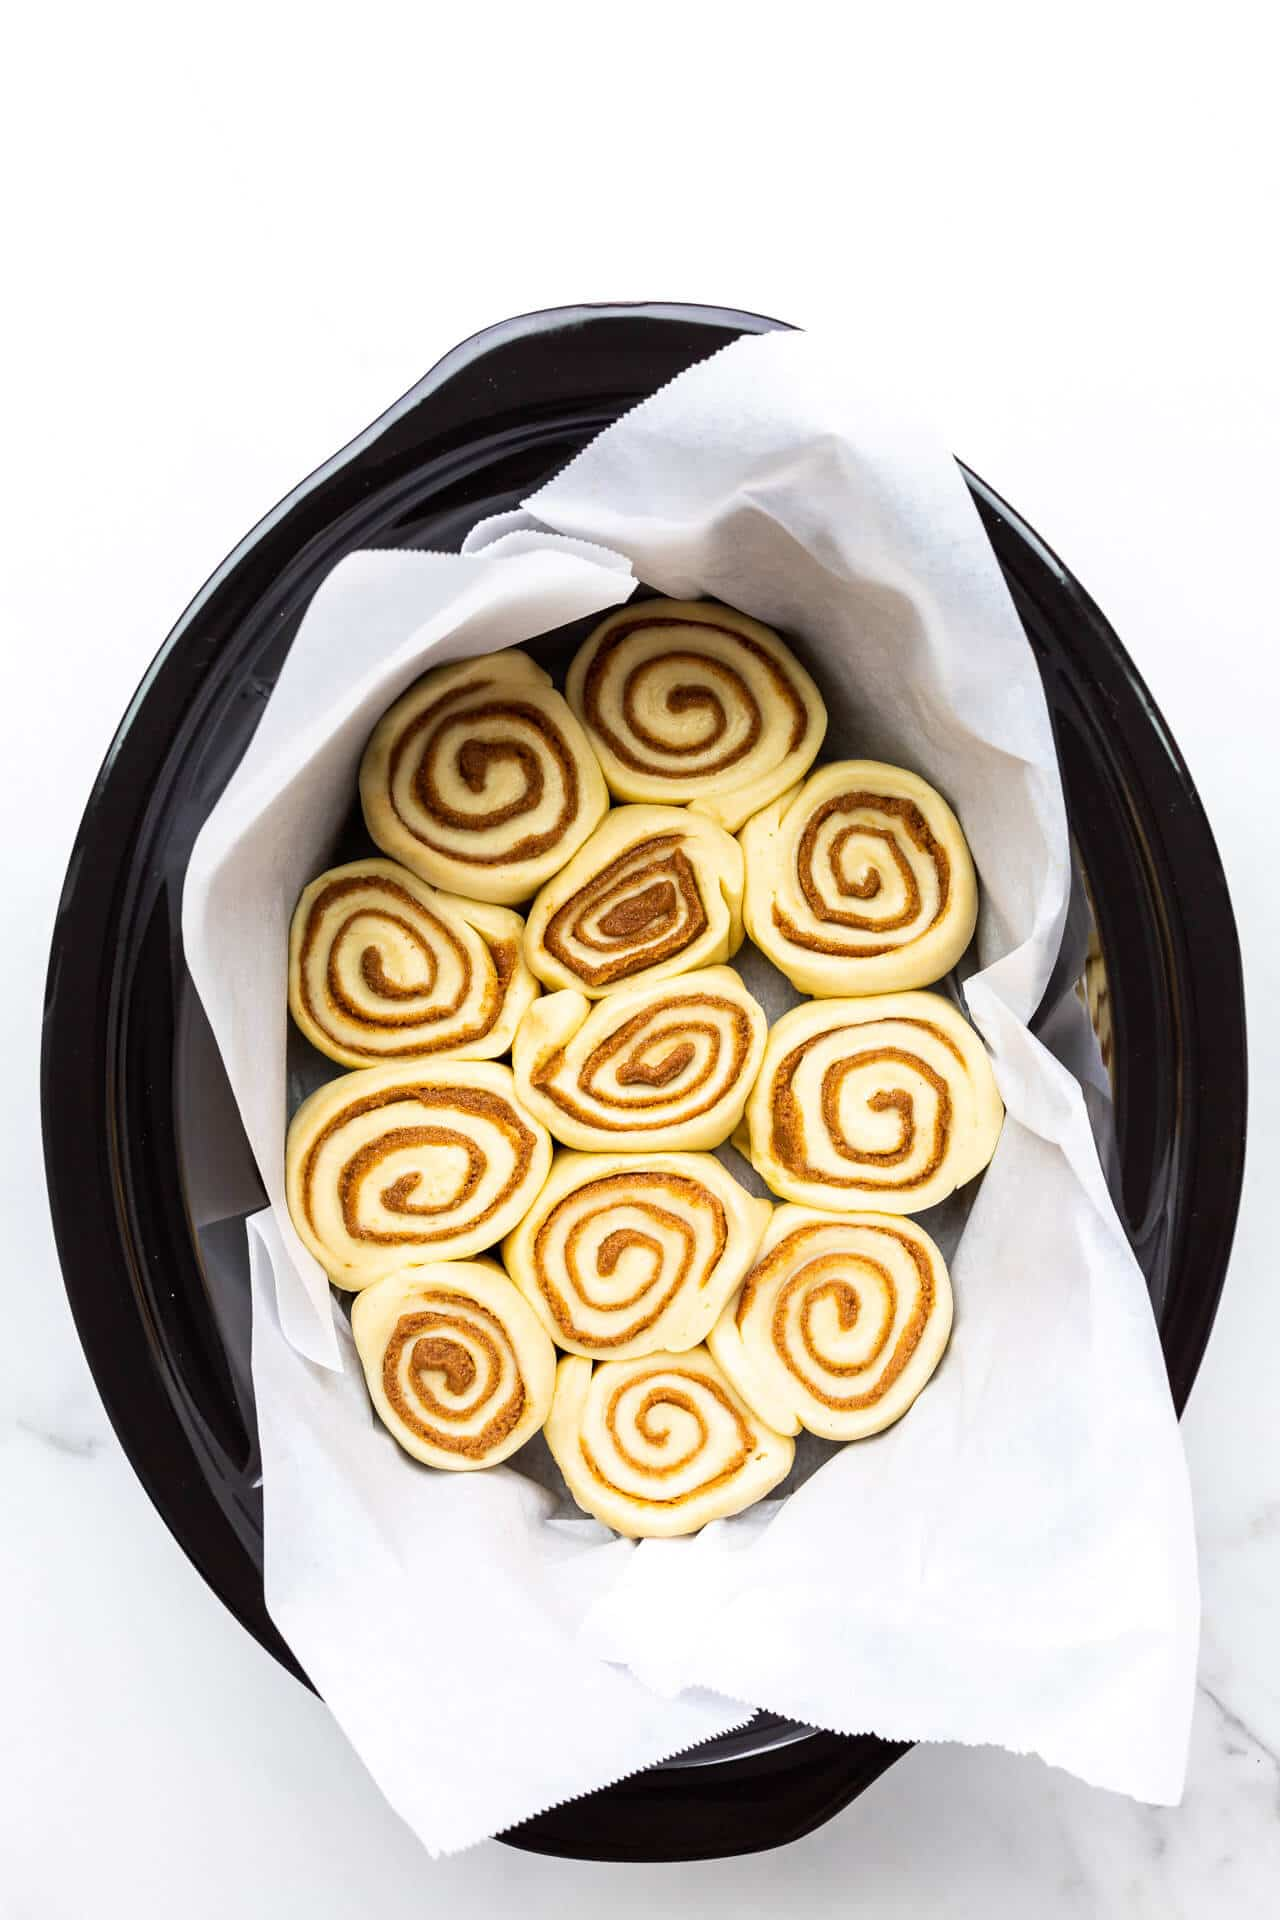 Cinnamon buns placed in a parchment-lined slow cooker black ceramic insert ready to be baked